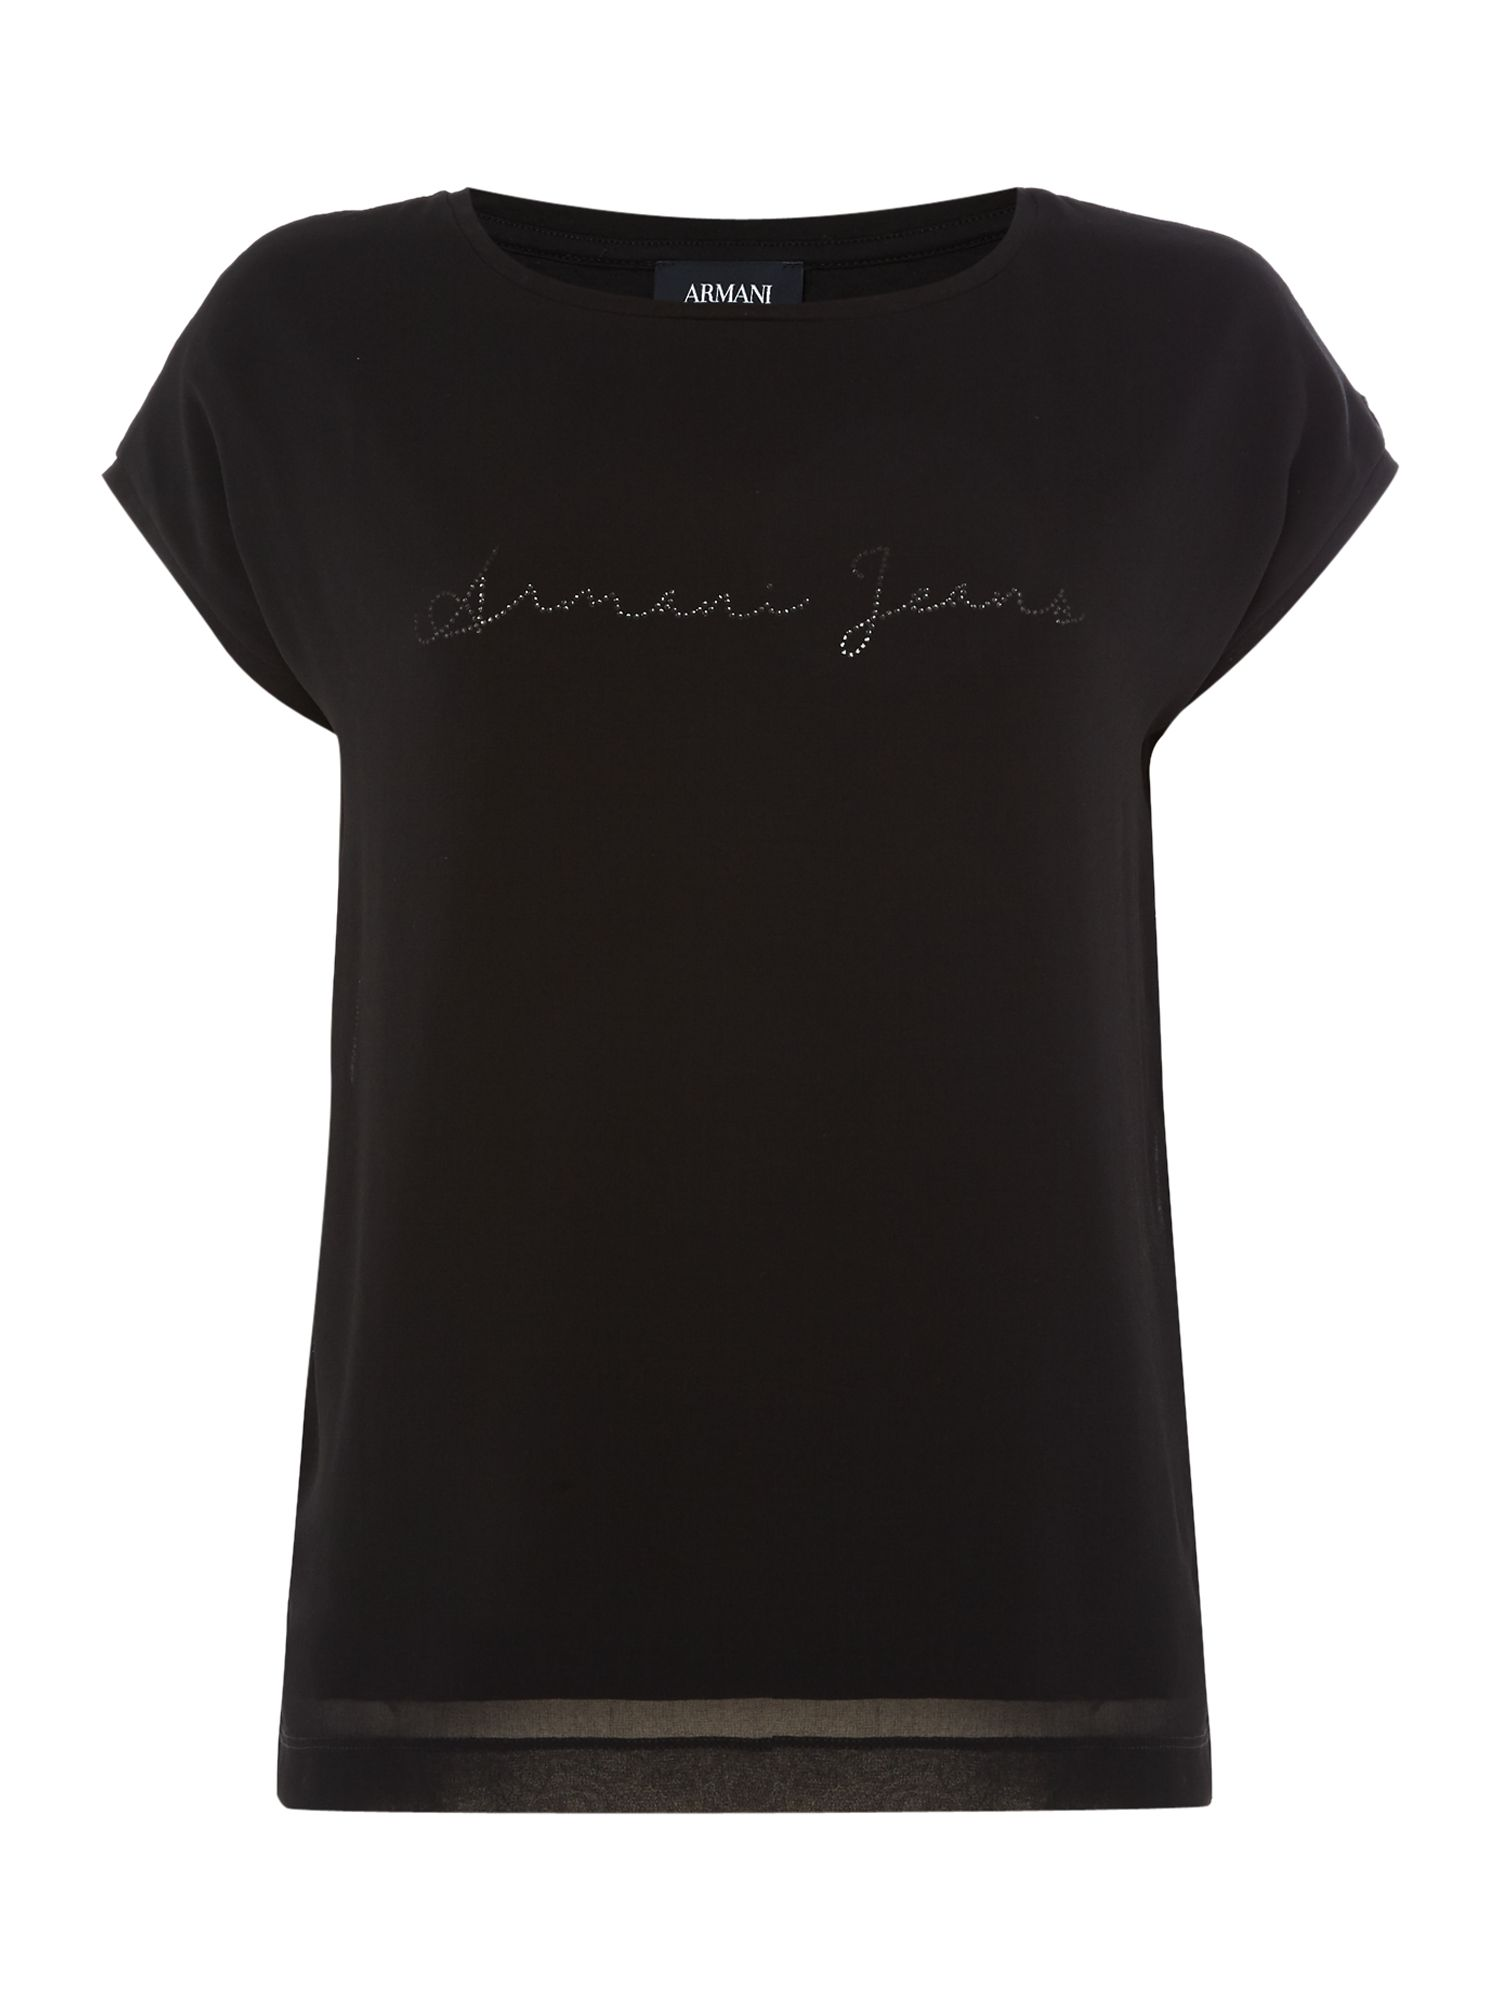 Armani Jeans Sleeveless plain tee in 1200 nero, Black